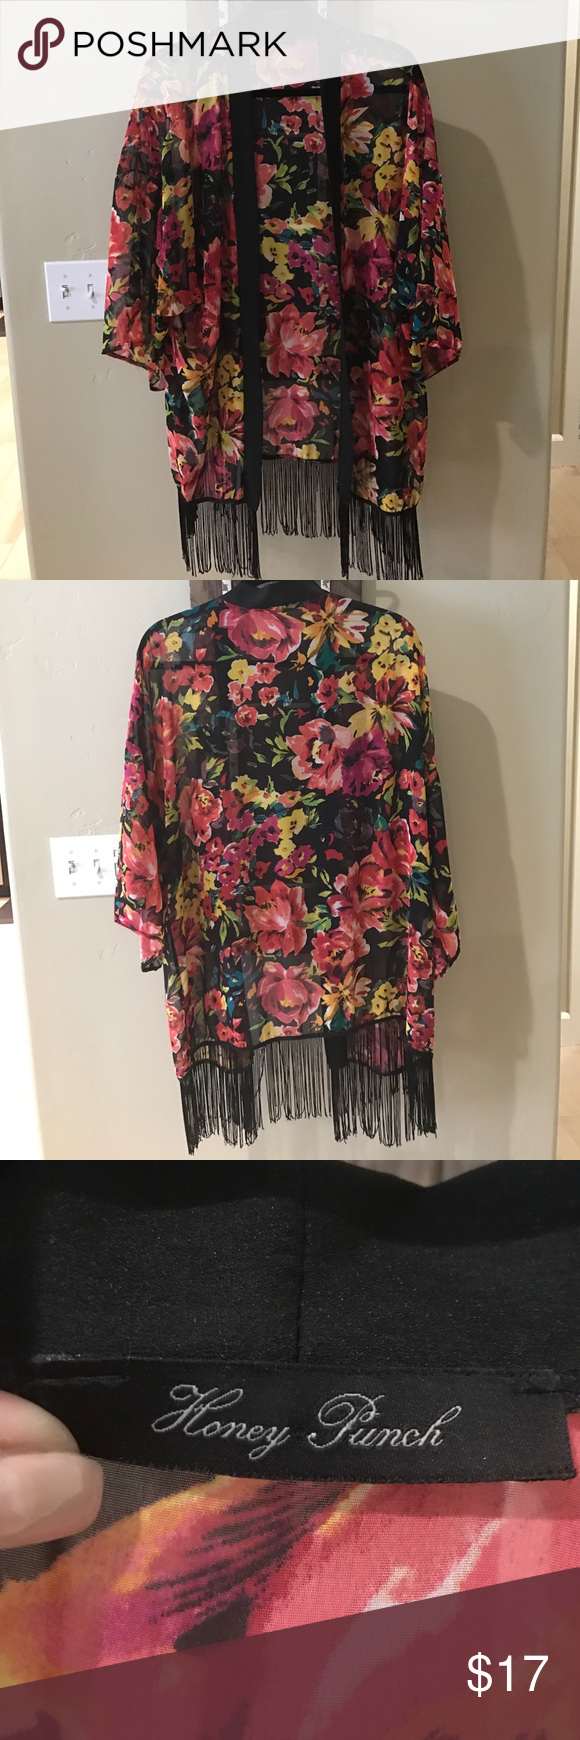 Light weight floral kimono Light weight floral kimono, great condition Honey Punch Tops